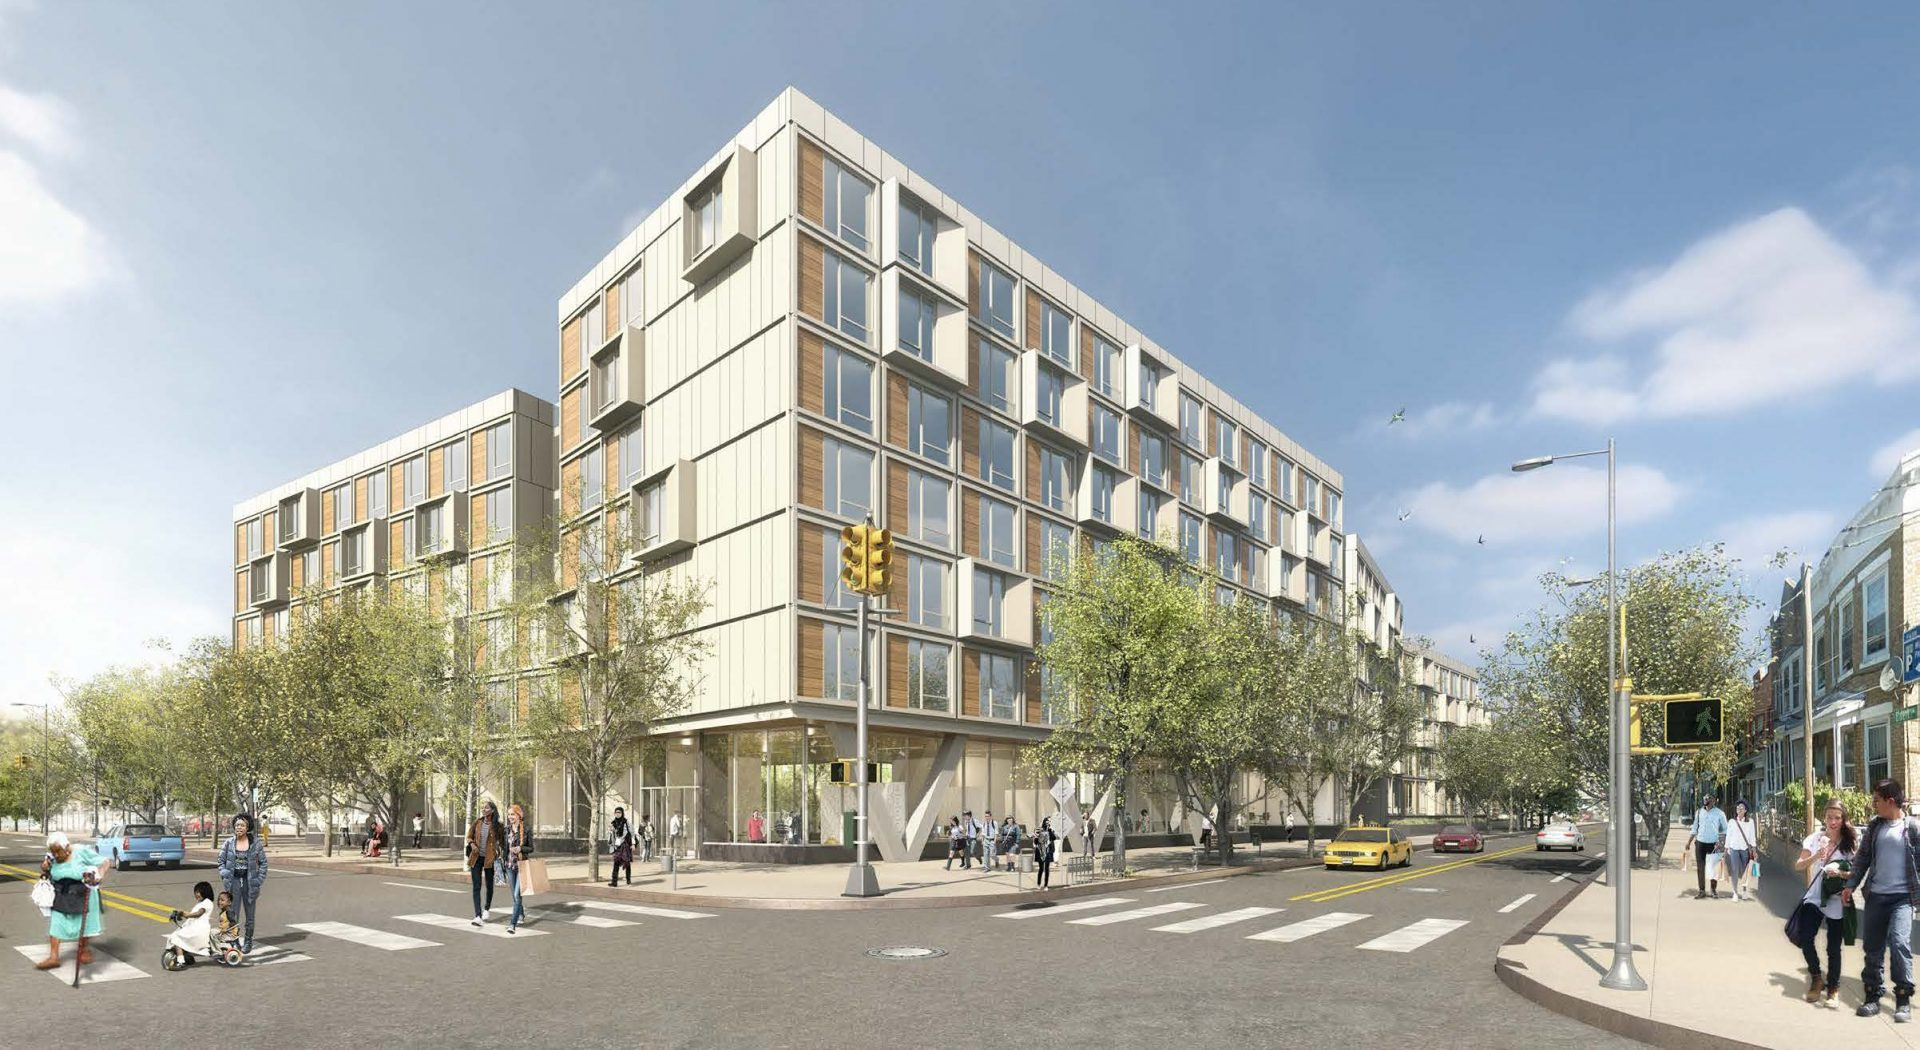 Modular construction could be key to affordable housing